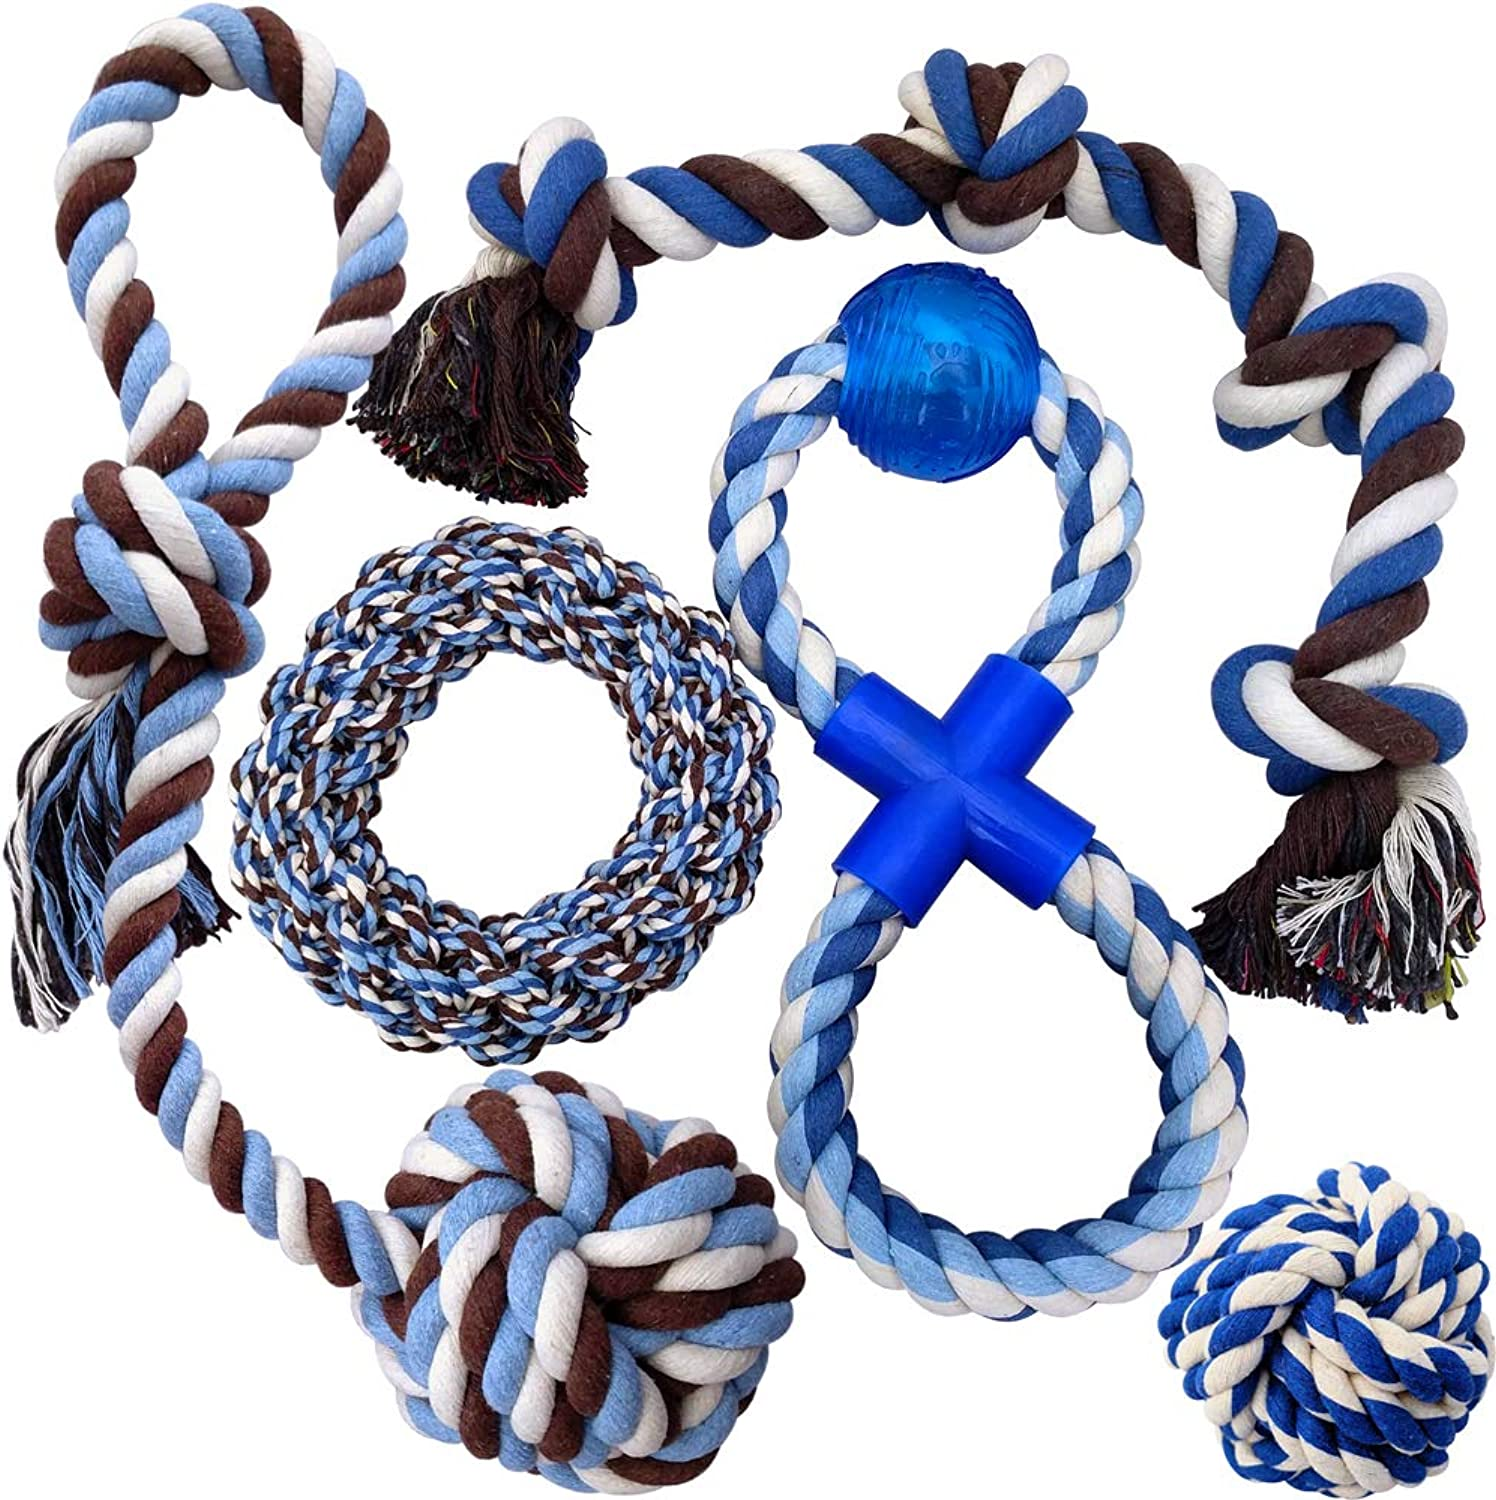 Otterly Pets Puppy Dog Pet Rope Toys  Medium to Large Dogs (5Pack)